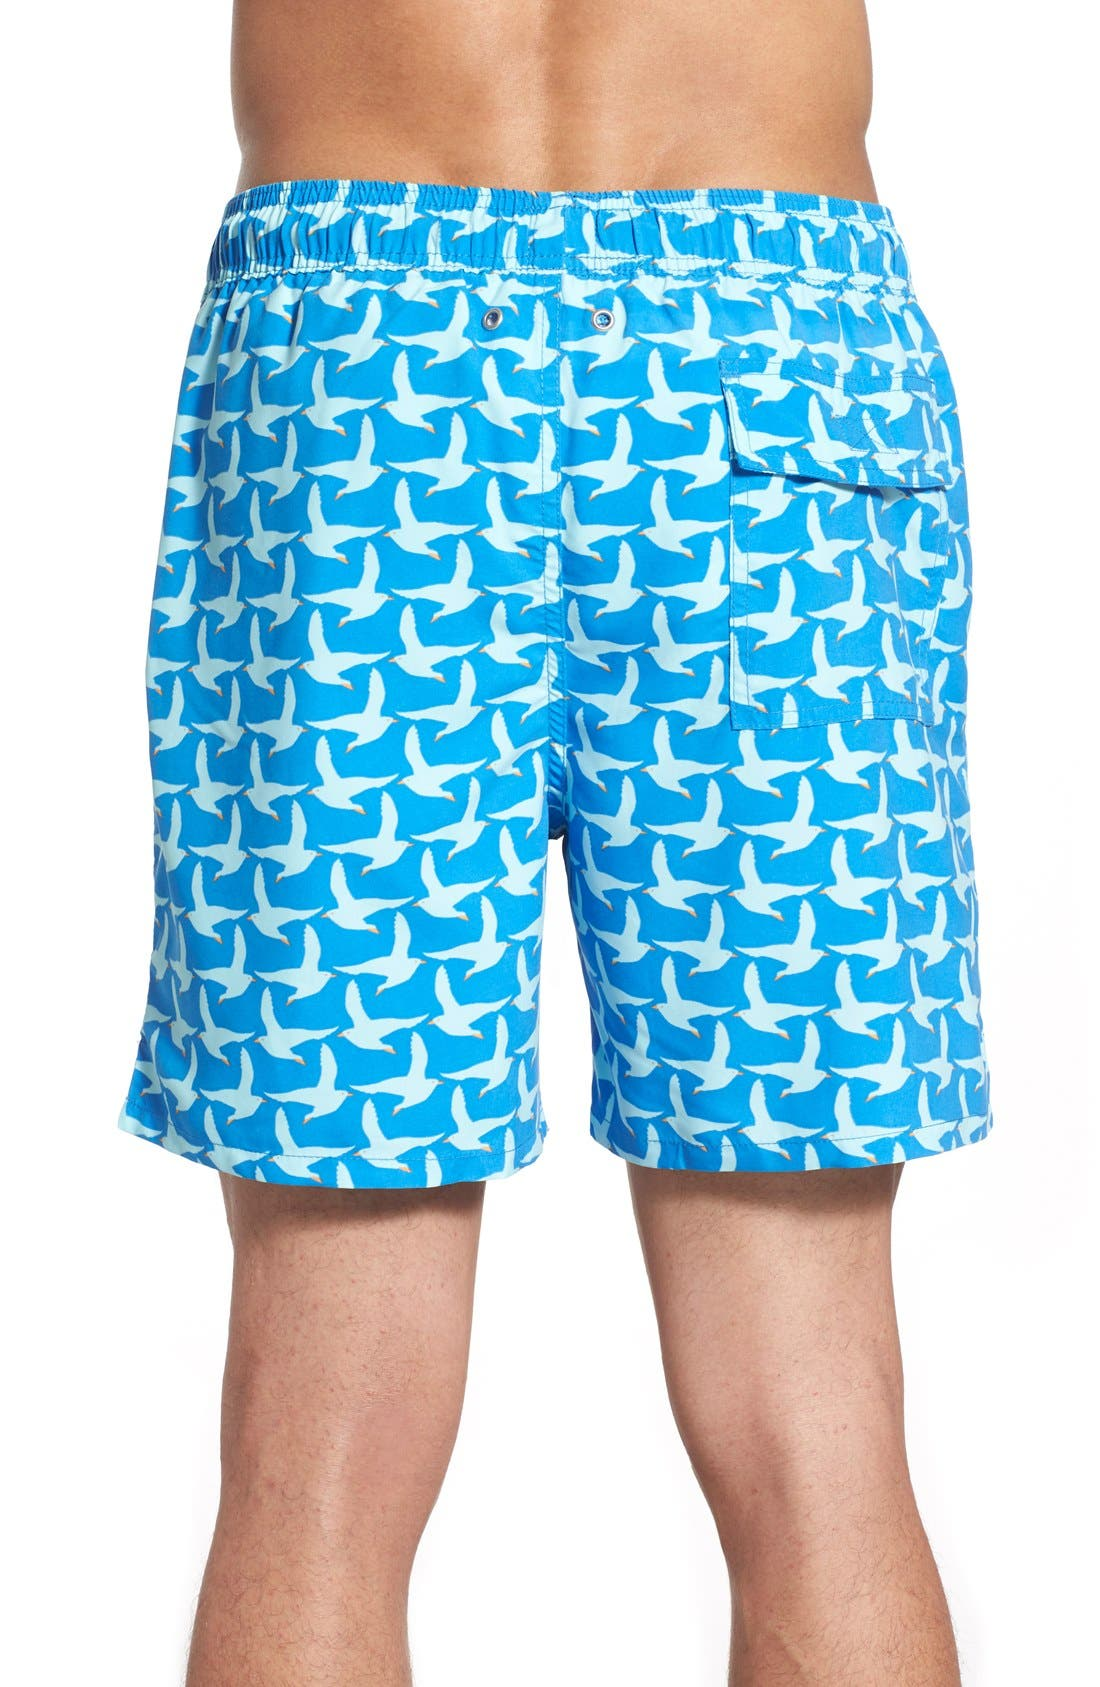 Alternate Image 2  - Tom & Teddy Seagull Print Swim Trunks